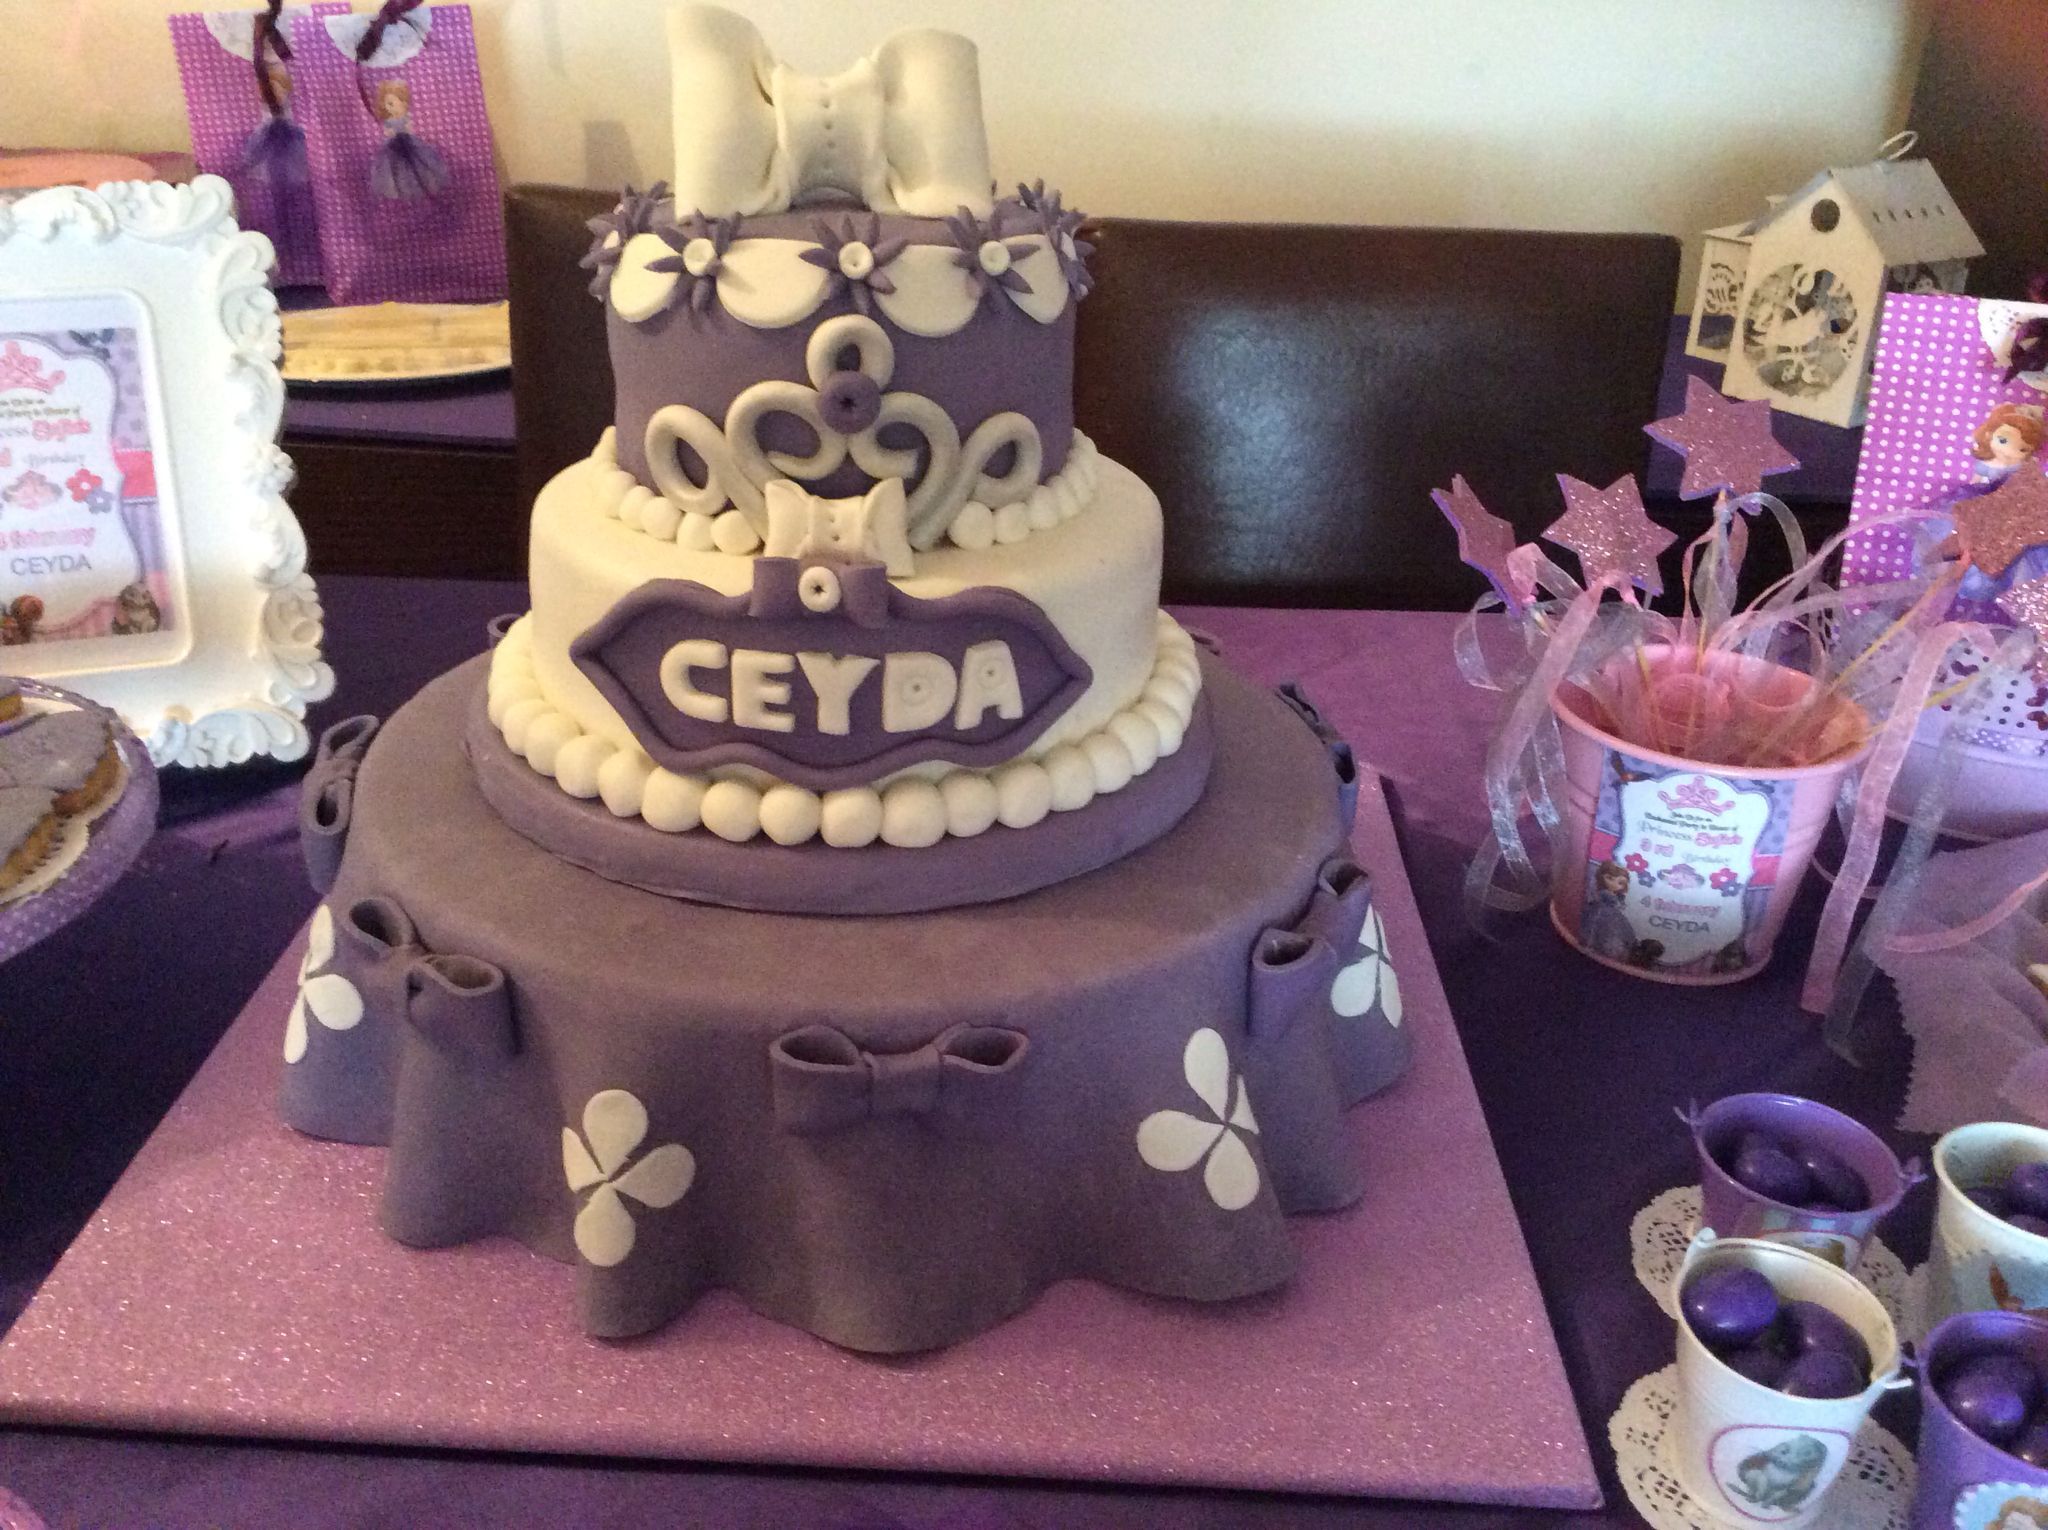 Sofia The First Birthday Cake Ceydas 3th Birthday Pinterest